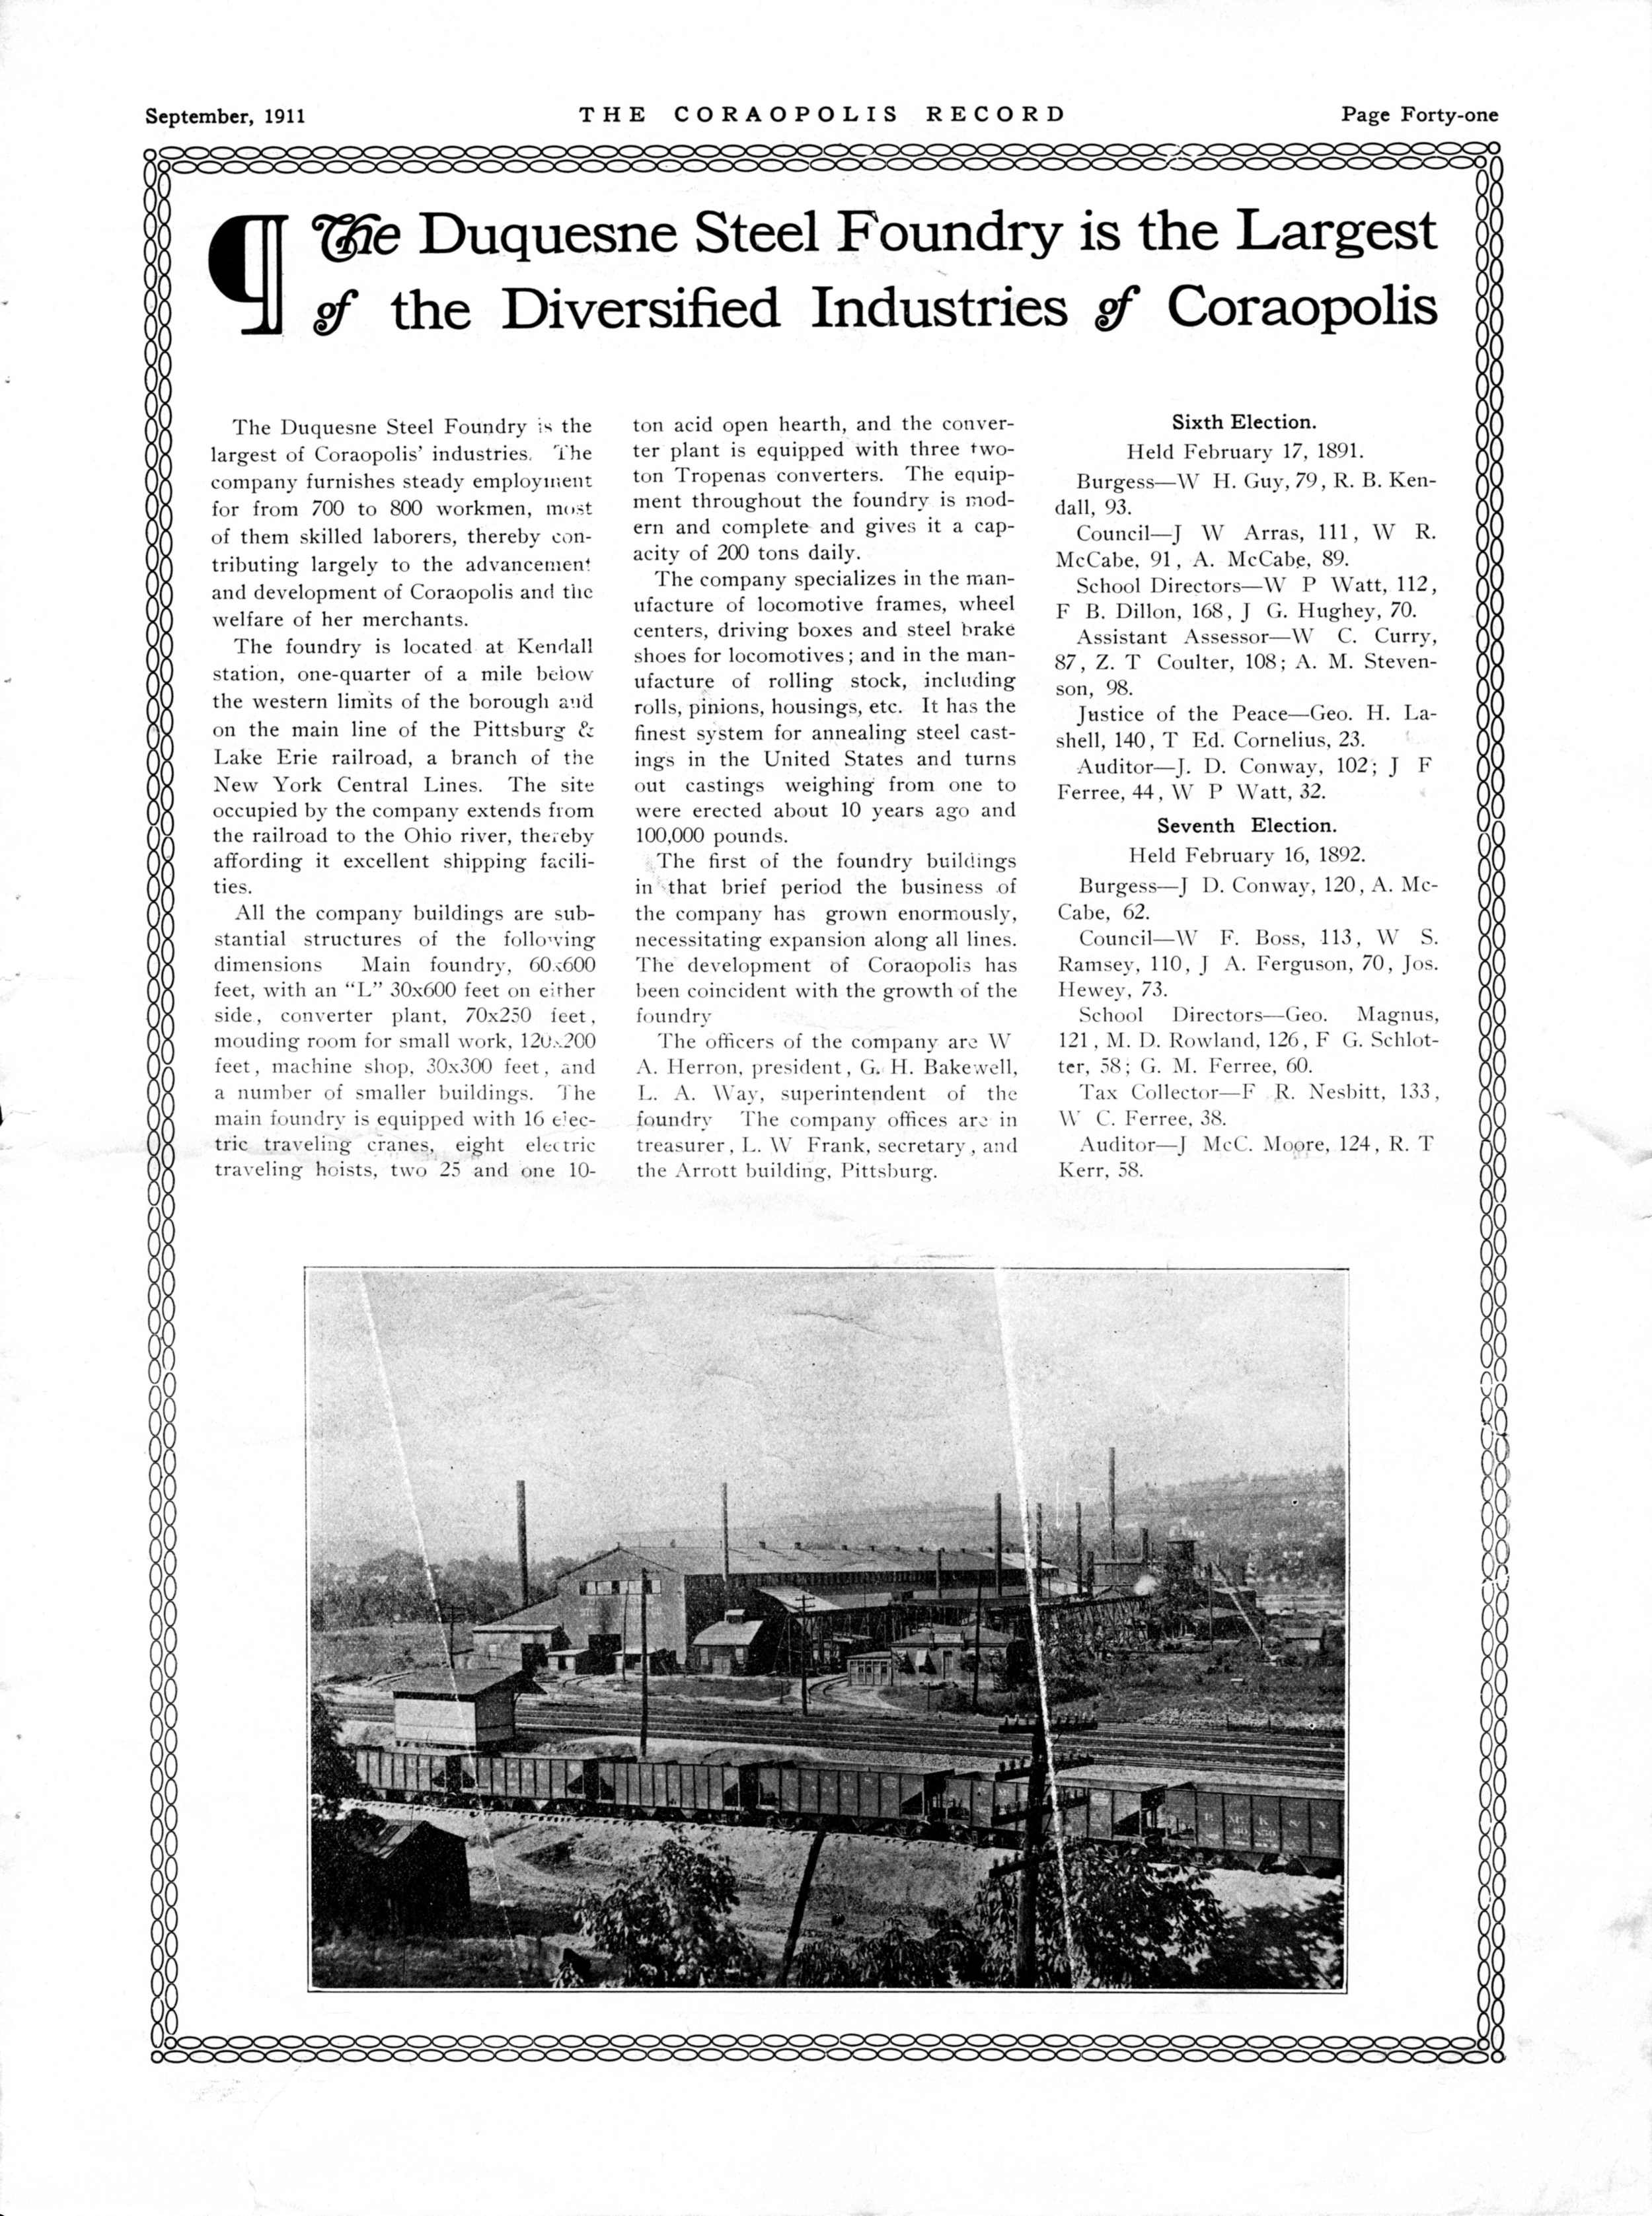 The Coraopolis Record, September 1911, page 41